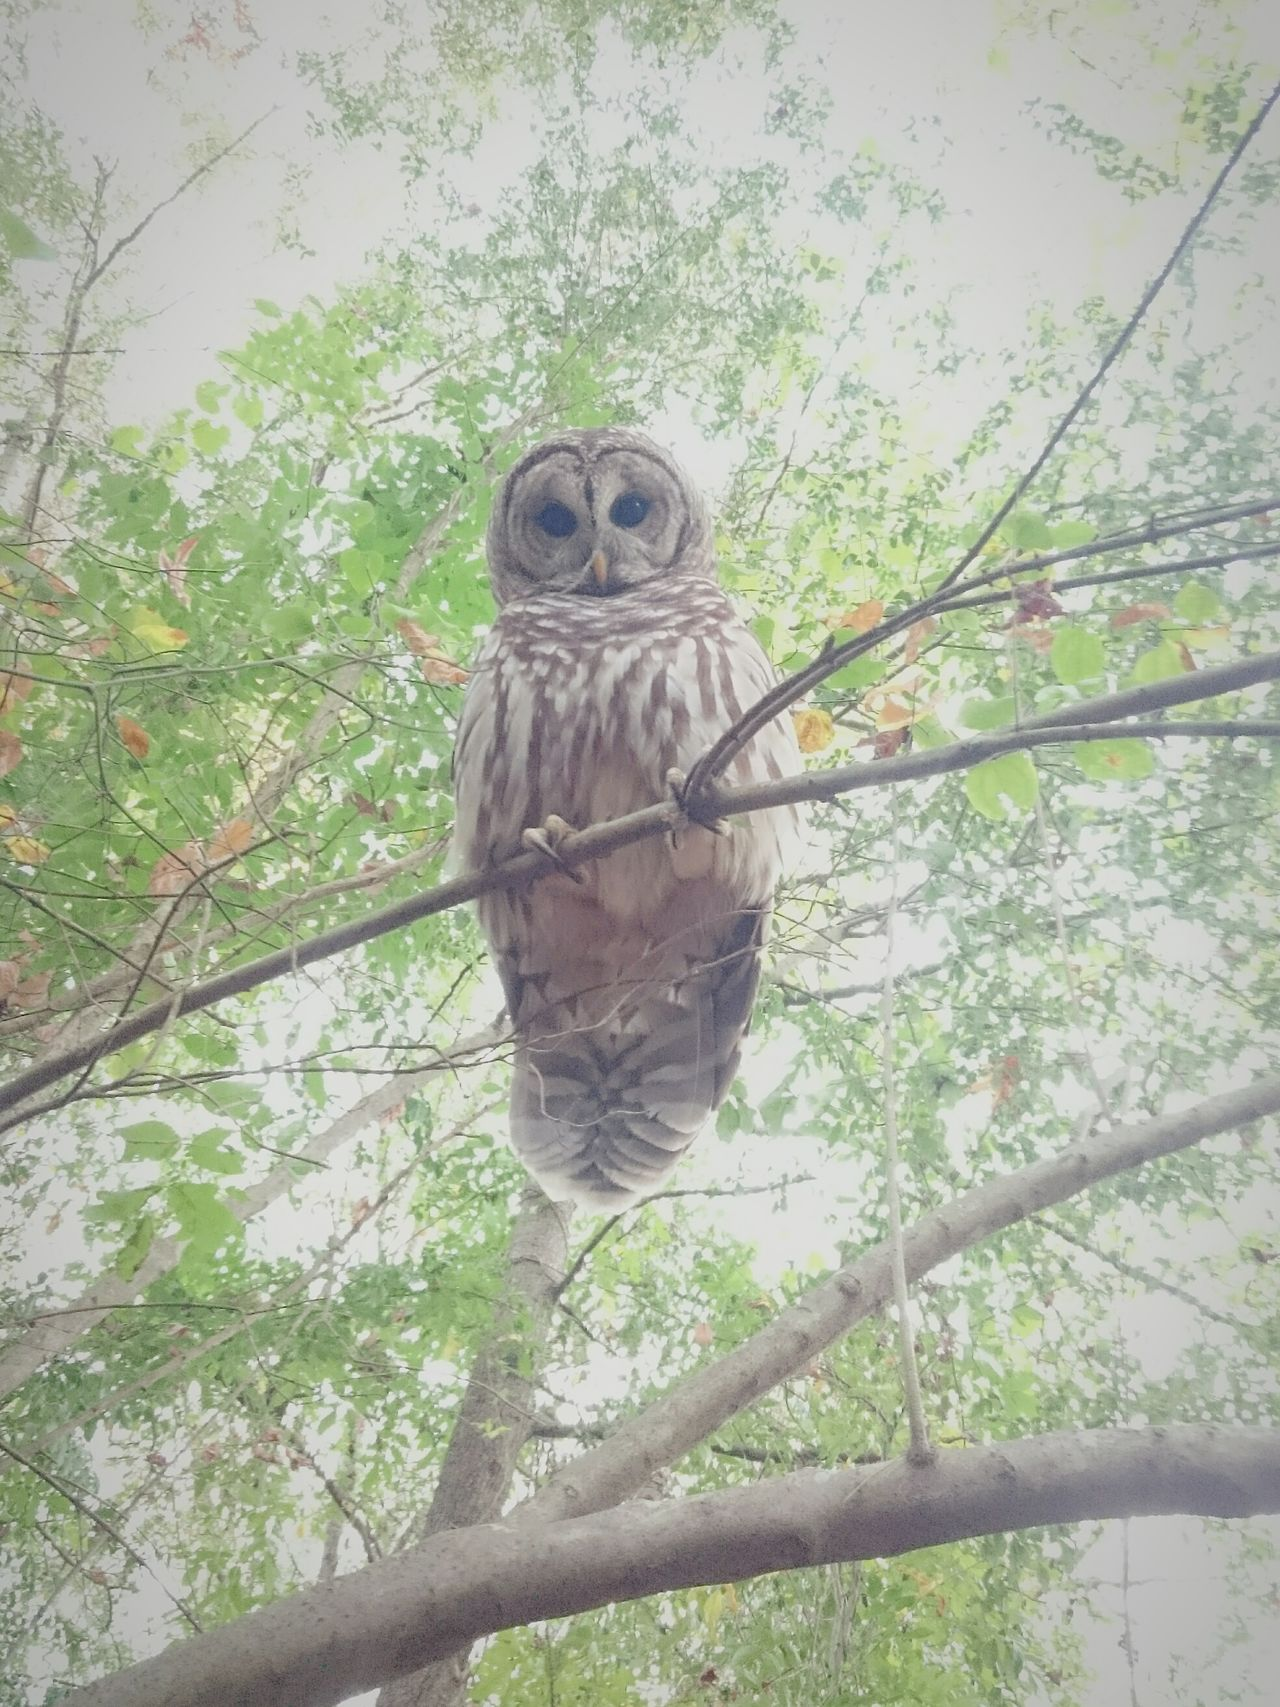 Owl Owlelujah! Twilight Betweenworlds Backyard Friend Spirit Wisdom Sophıa Athena Athens Georgia Owl Medicine Birdtribe Nature Love ♥